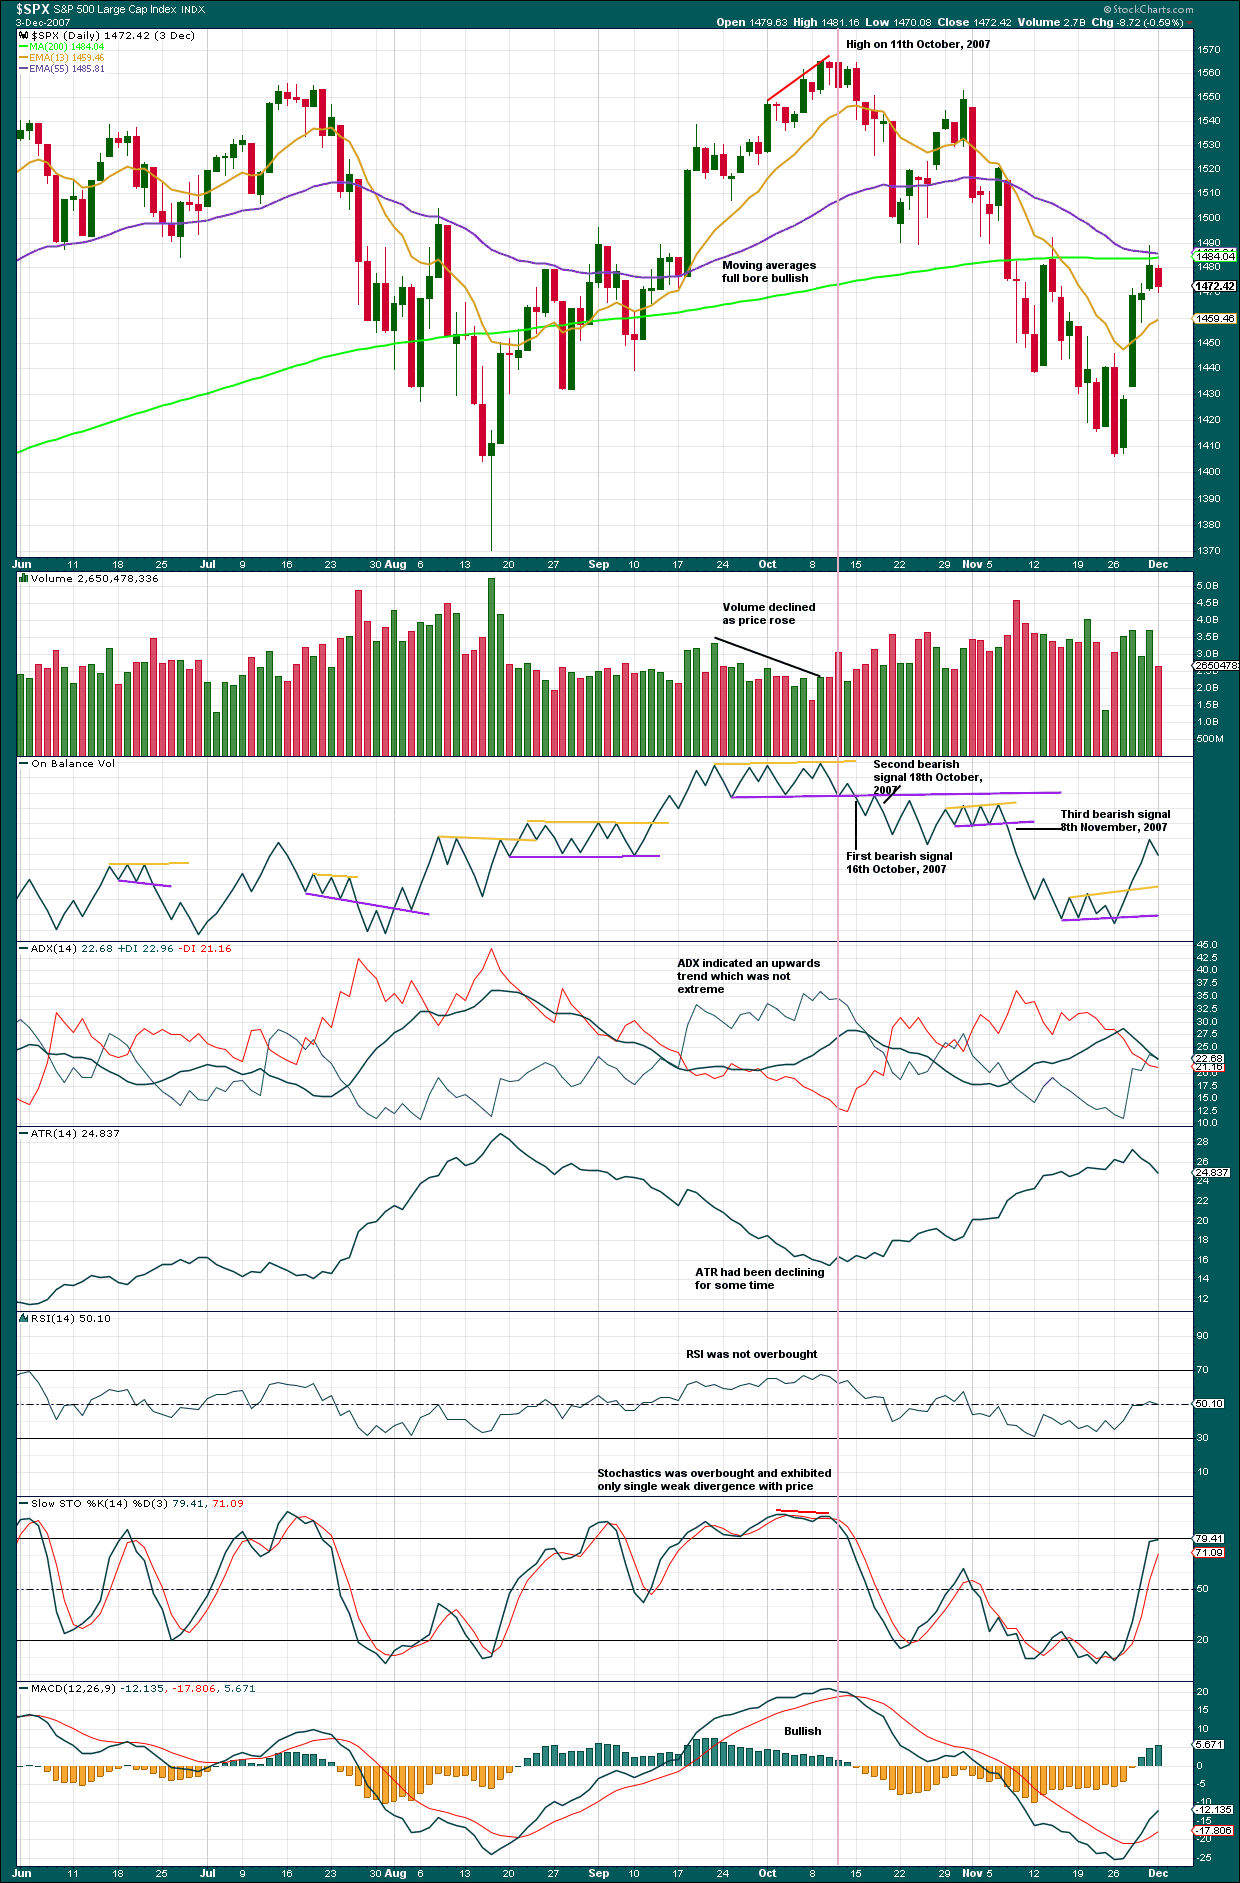 S&P 500 Daily 2007